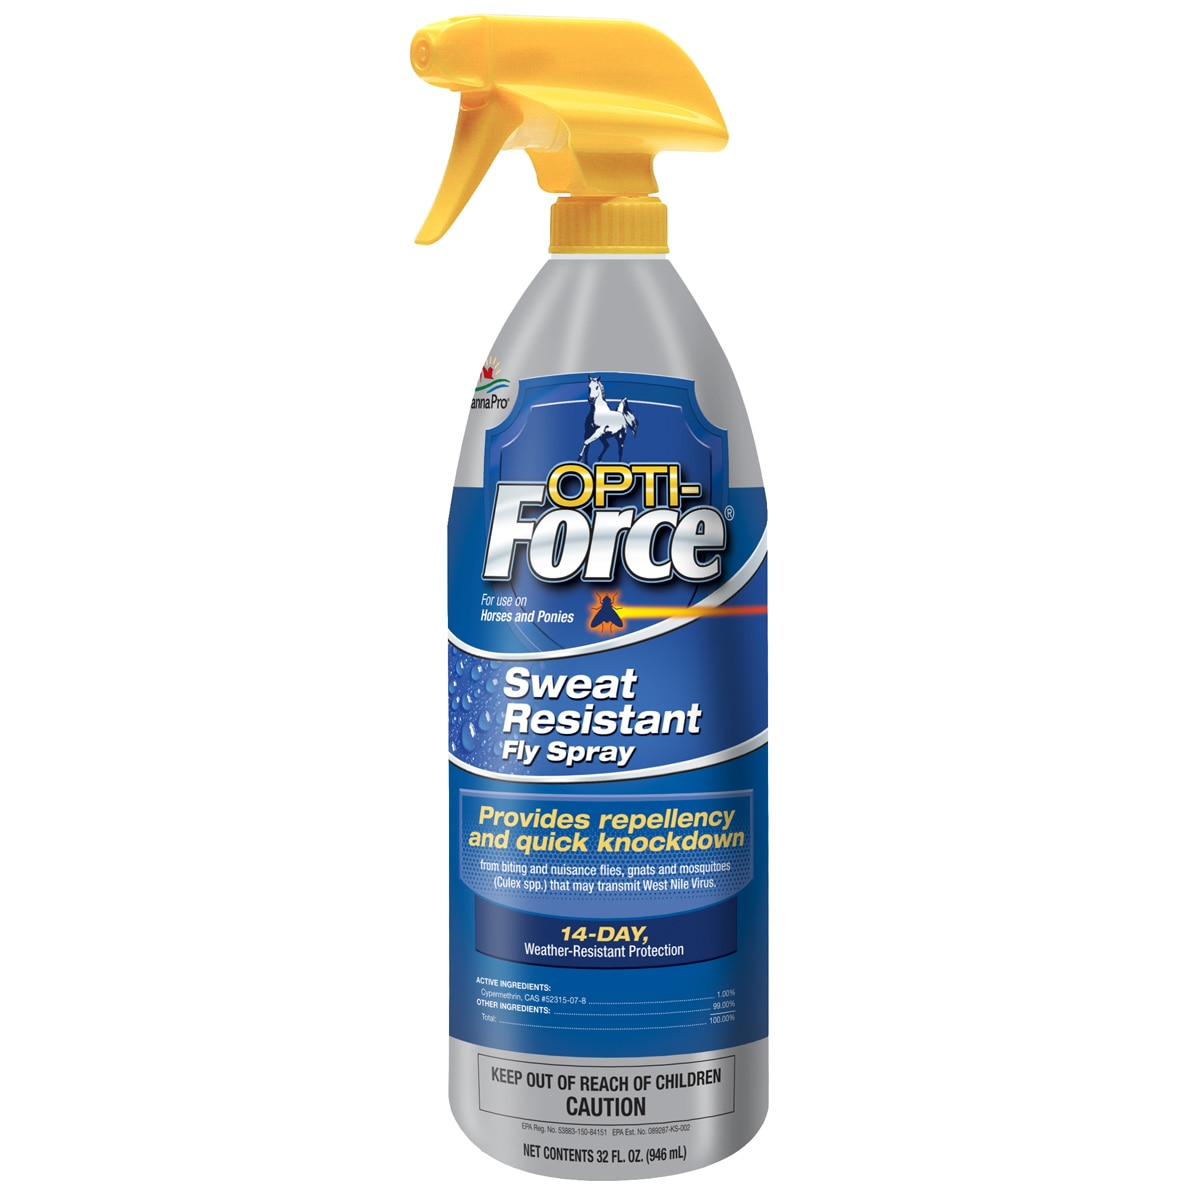 Opti-Force® Sweat Resistant Fly Spray